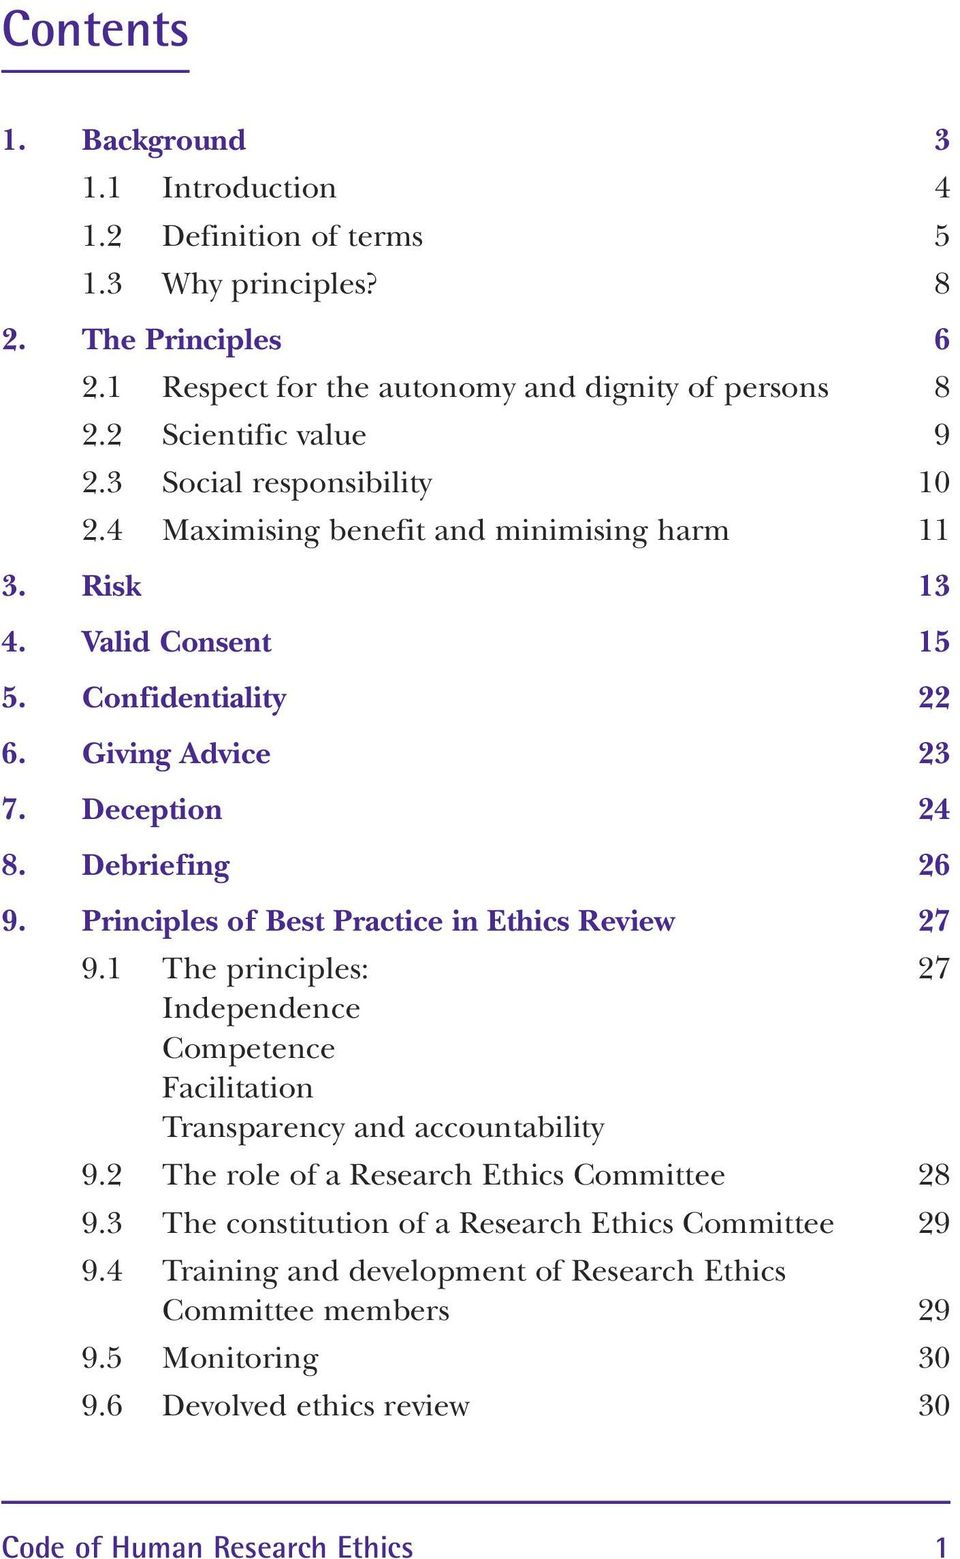 Principles of Best Practice in Ethics Review 27 9.1 The principles: 27 Independence Competence Facilitation Transparency and accountability 9.2 The role of a Research Ethics Committee 28 9.